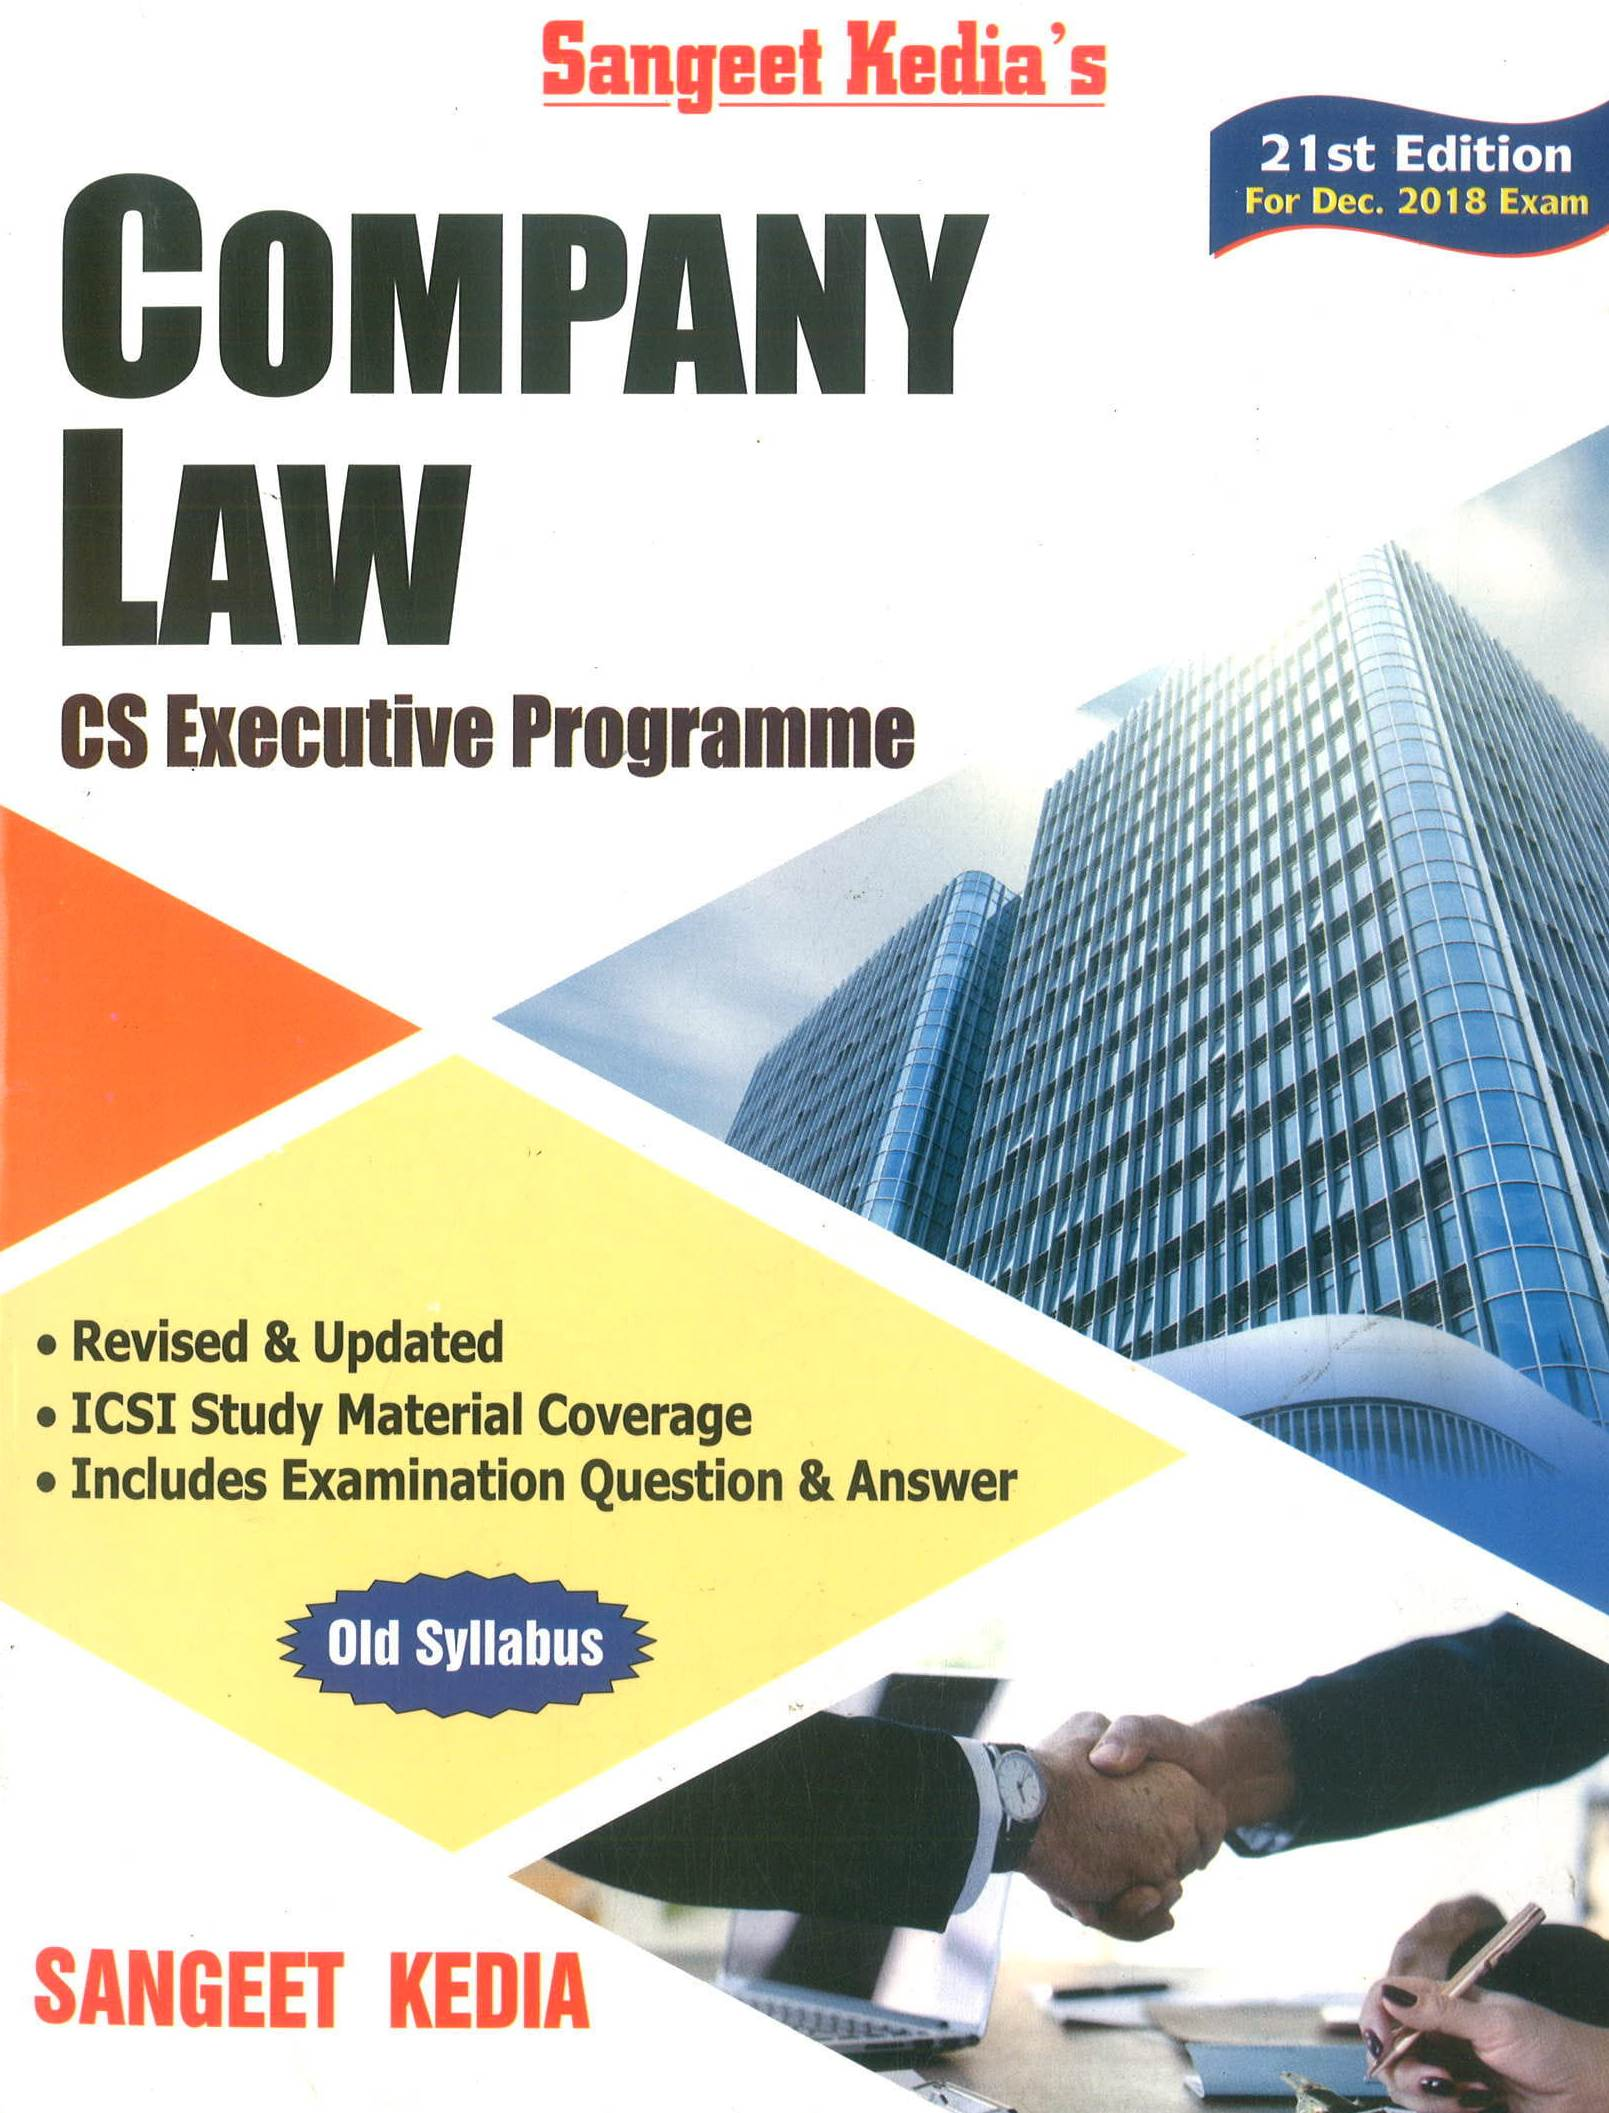 Pooja Law House For CS Executive Programme Company Law by Sangeet Kedia Applicable For Dec 2018 Exam (Pooja Law House Publishing) Edition 21st, 2018